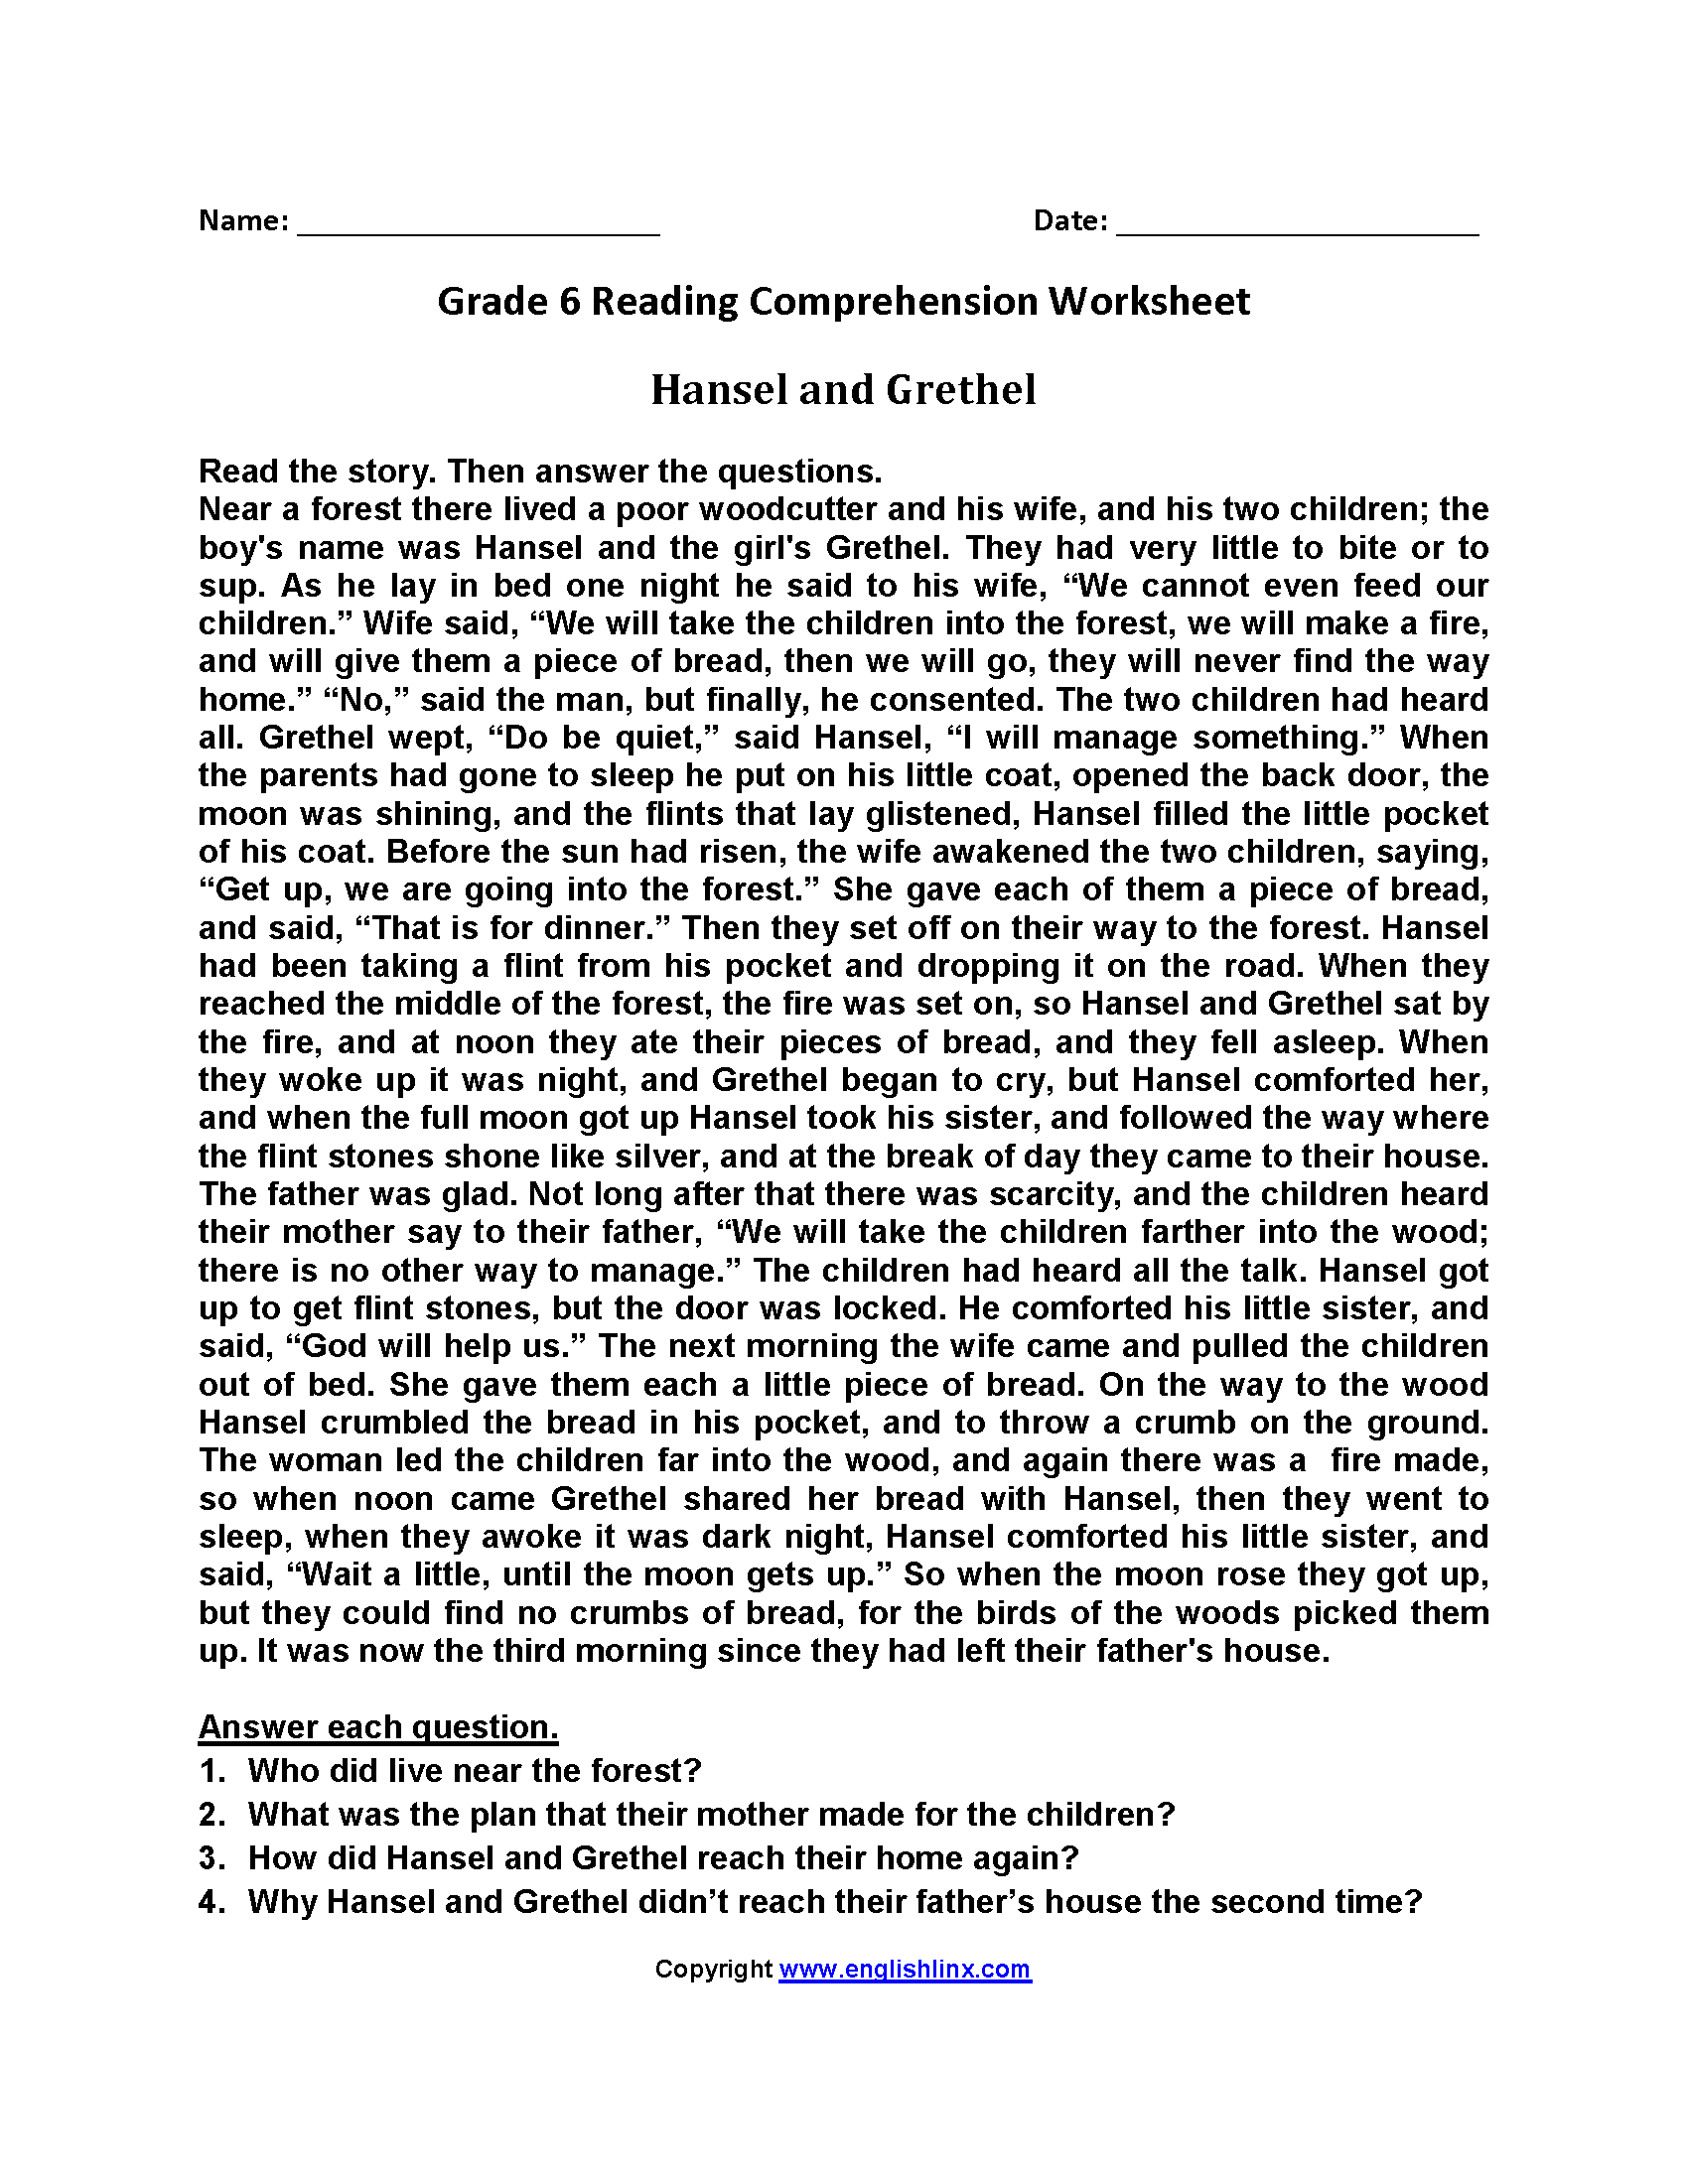 Worksheets Reading Comprehension Worksheets 6th Grade Cheatslist Free Worksheets For Kids